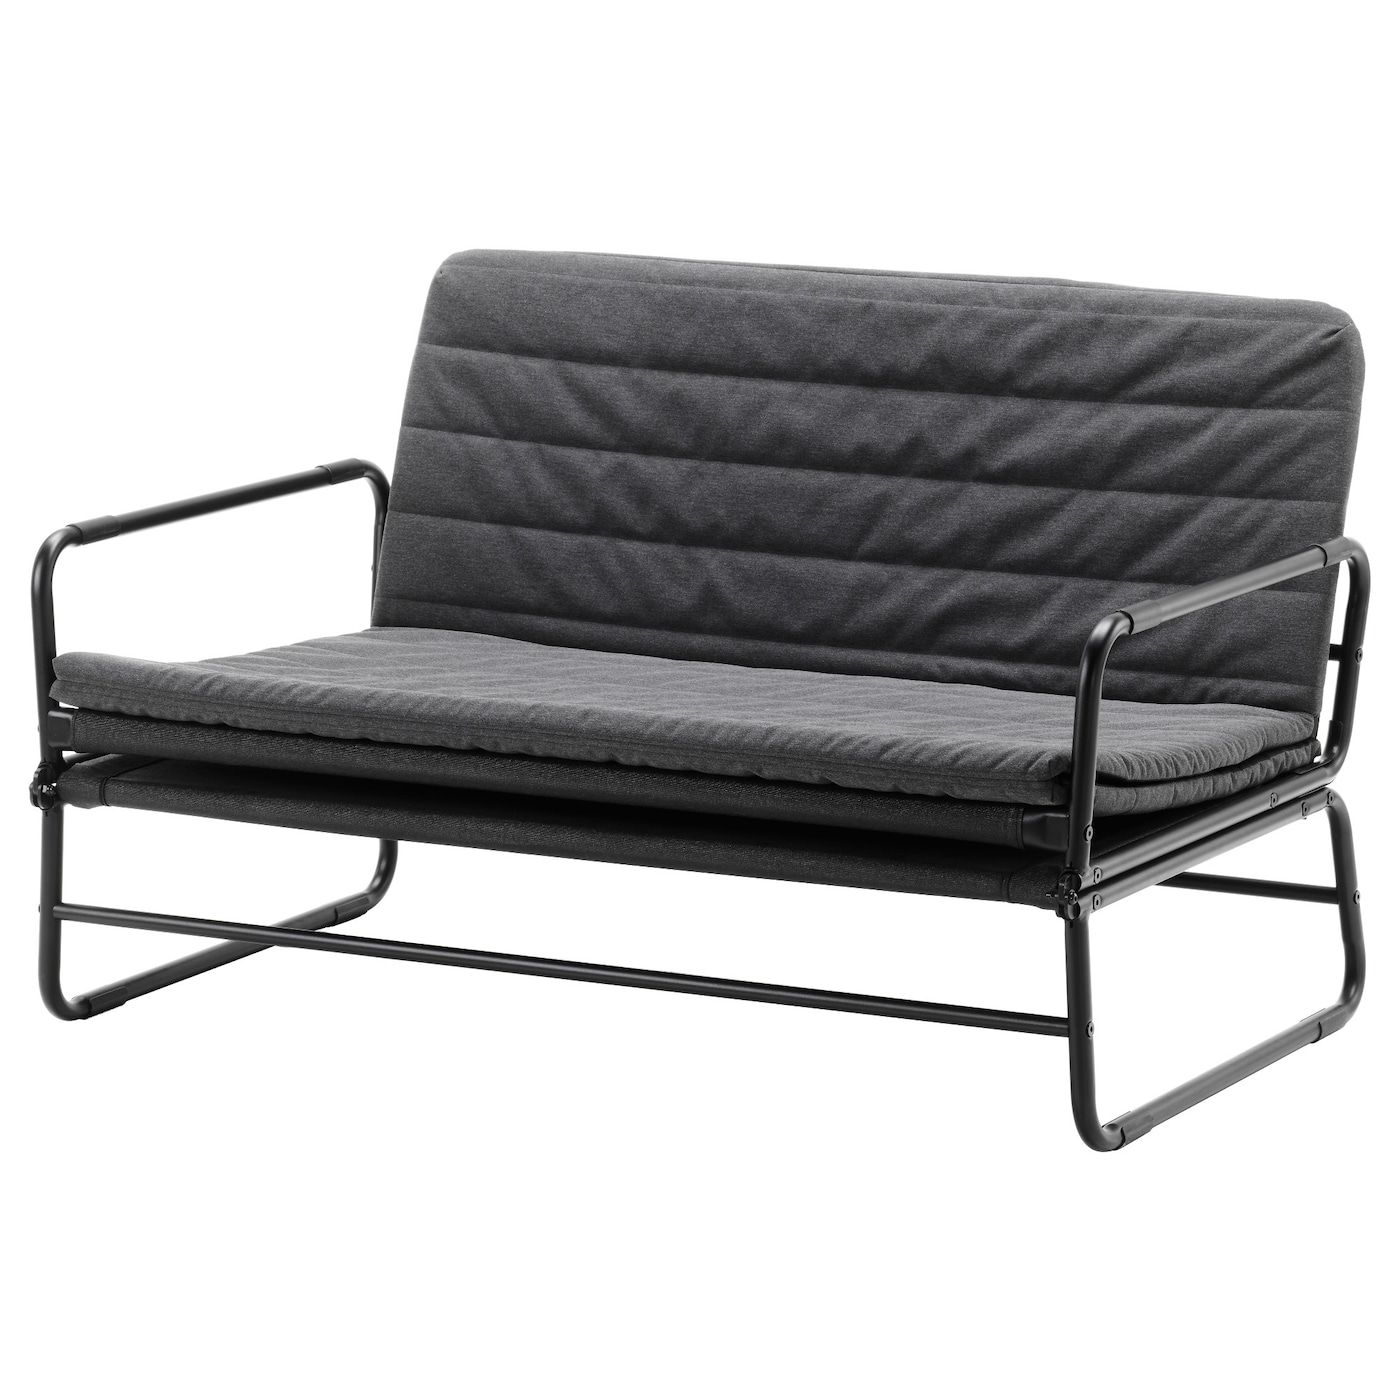 Ikea Hammarn Sofa Bed Readily Converts Into A Roomy For Two Lightweight